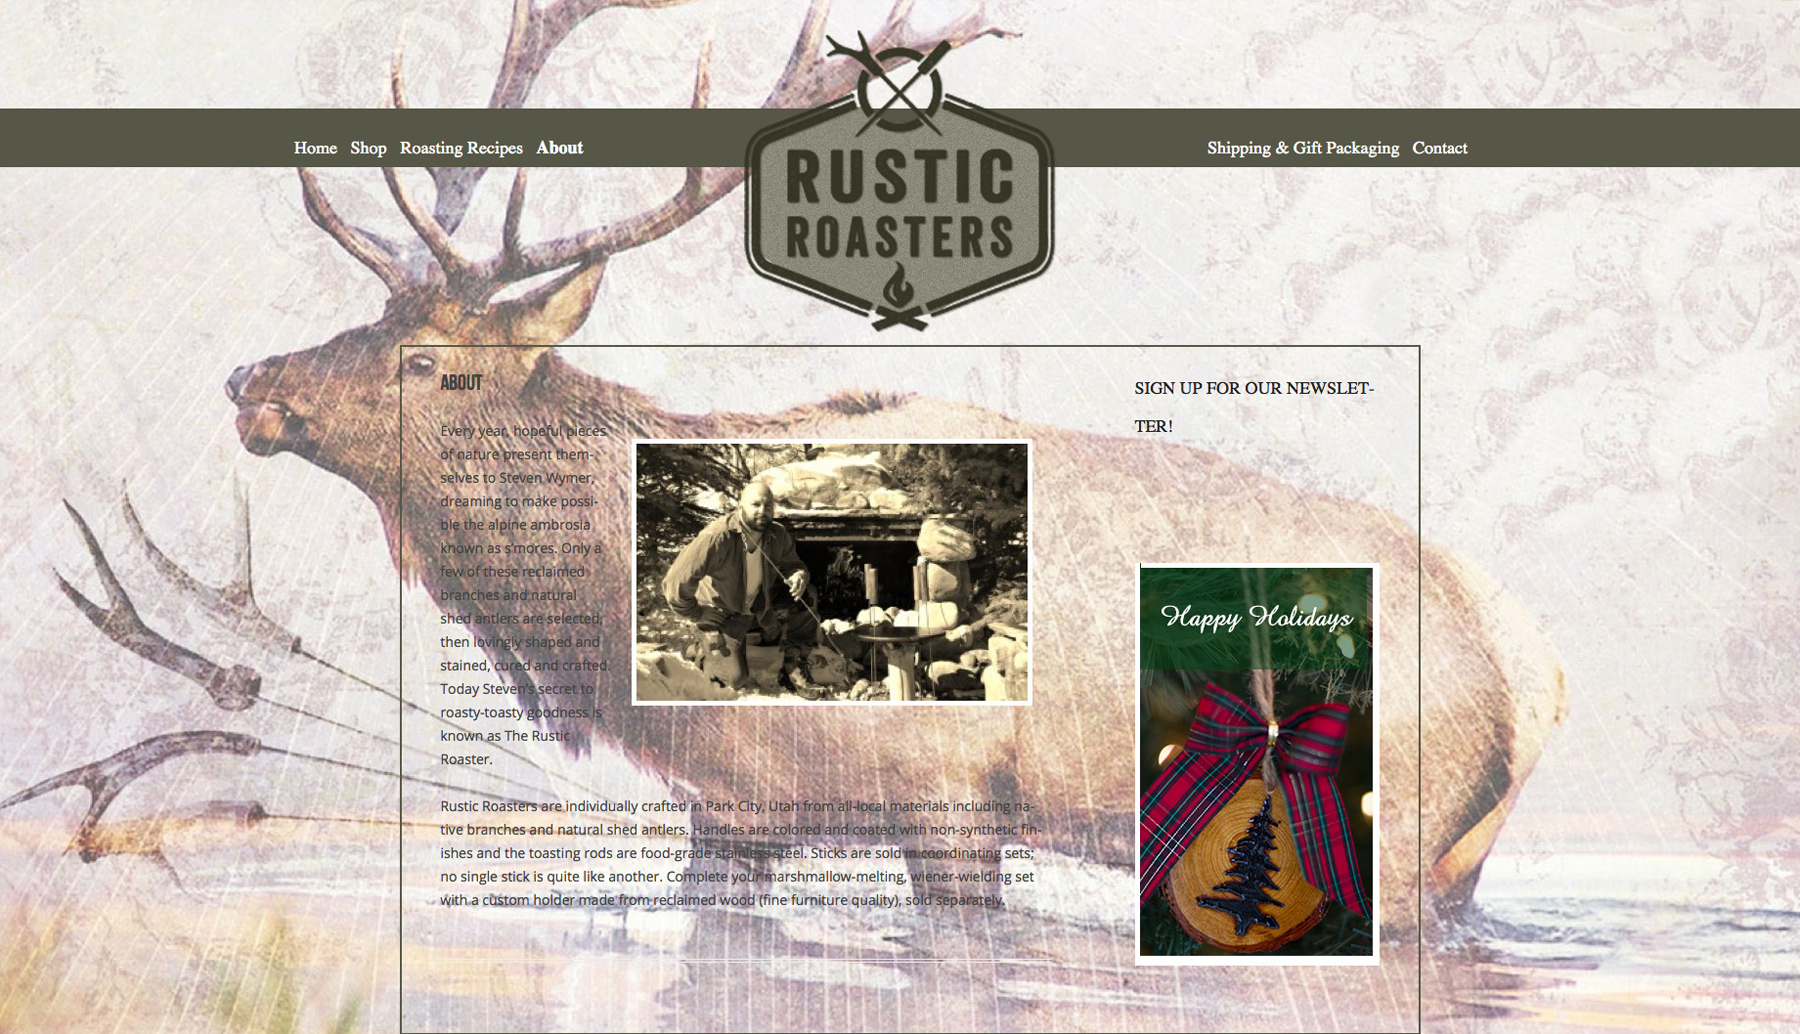 Rustic Roasters website design before